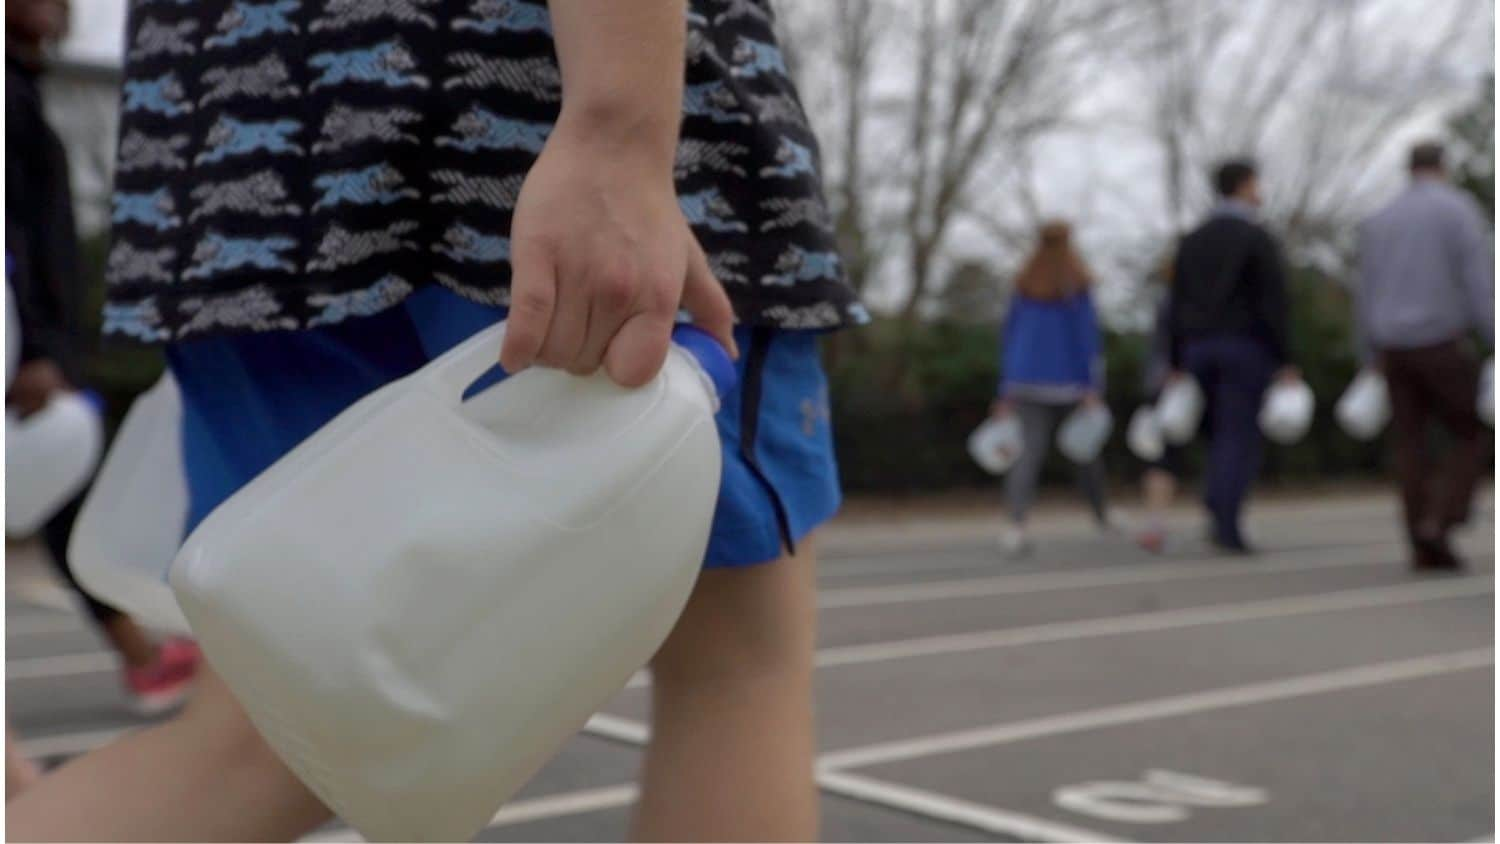 High school students carried water in a project designed to teach them about global water access.